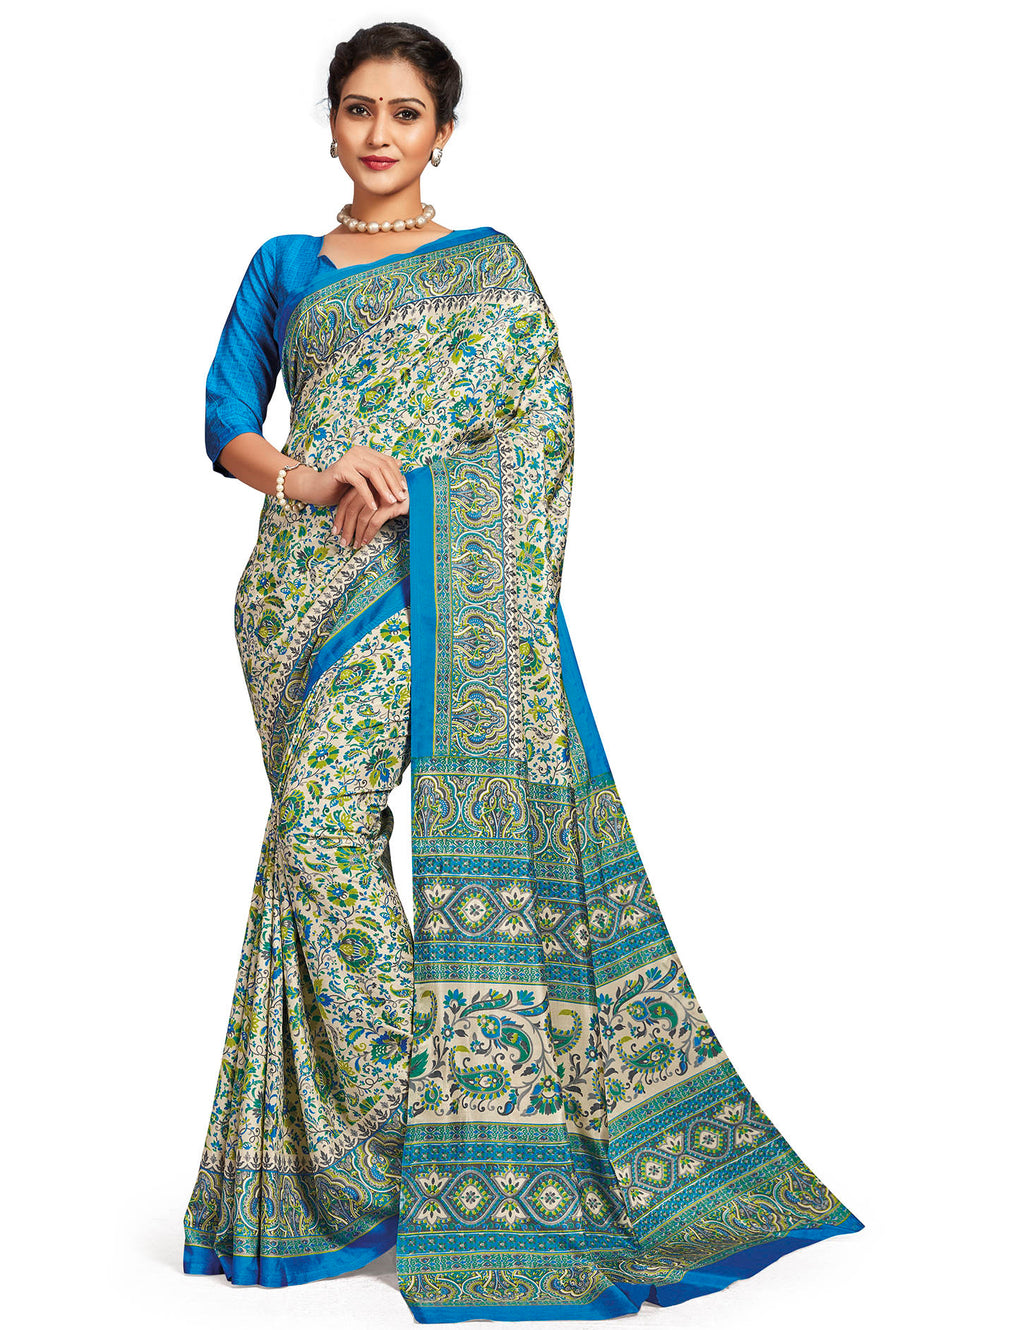 White & Firozi Color Crepe Daily Wear Printed Sarees NYF-7790